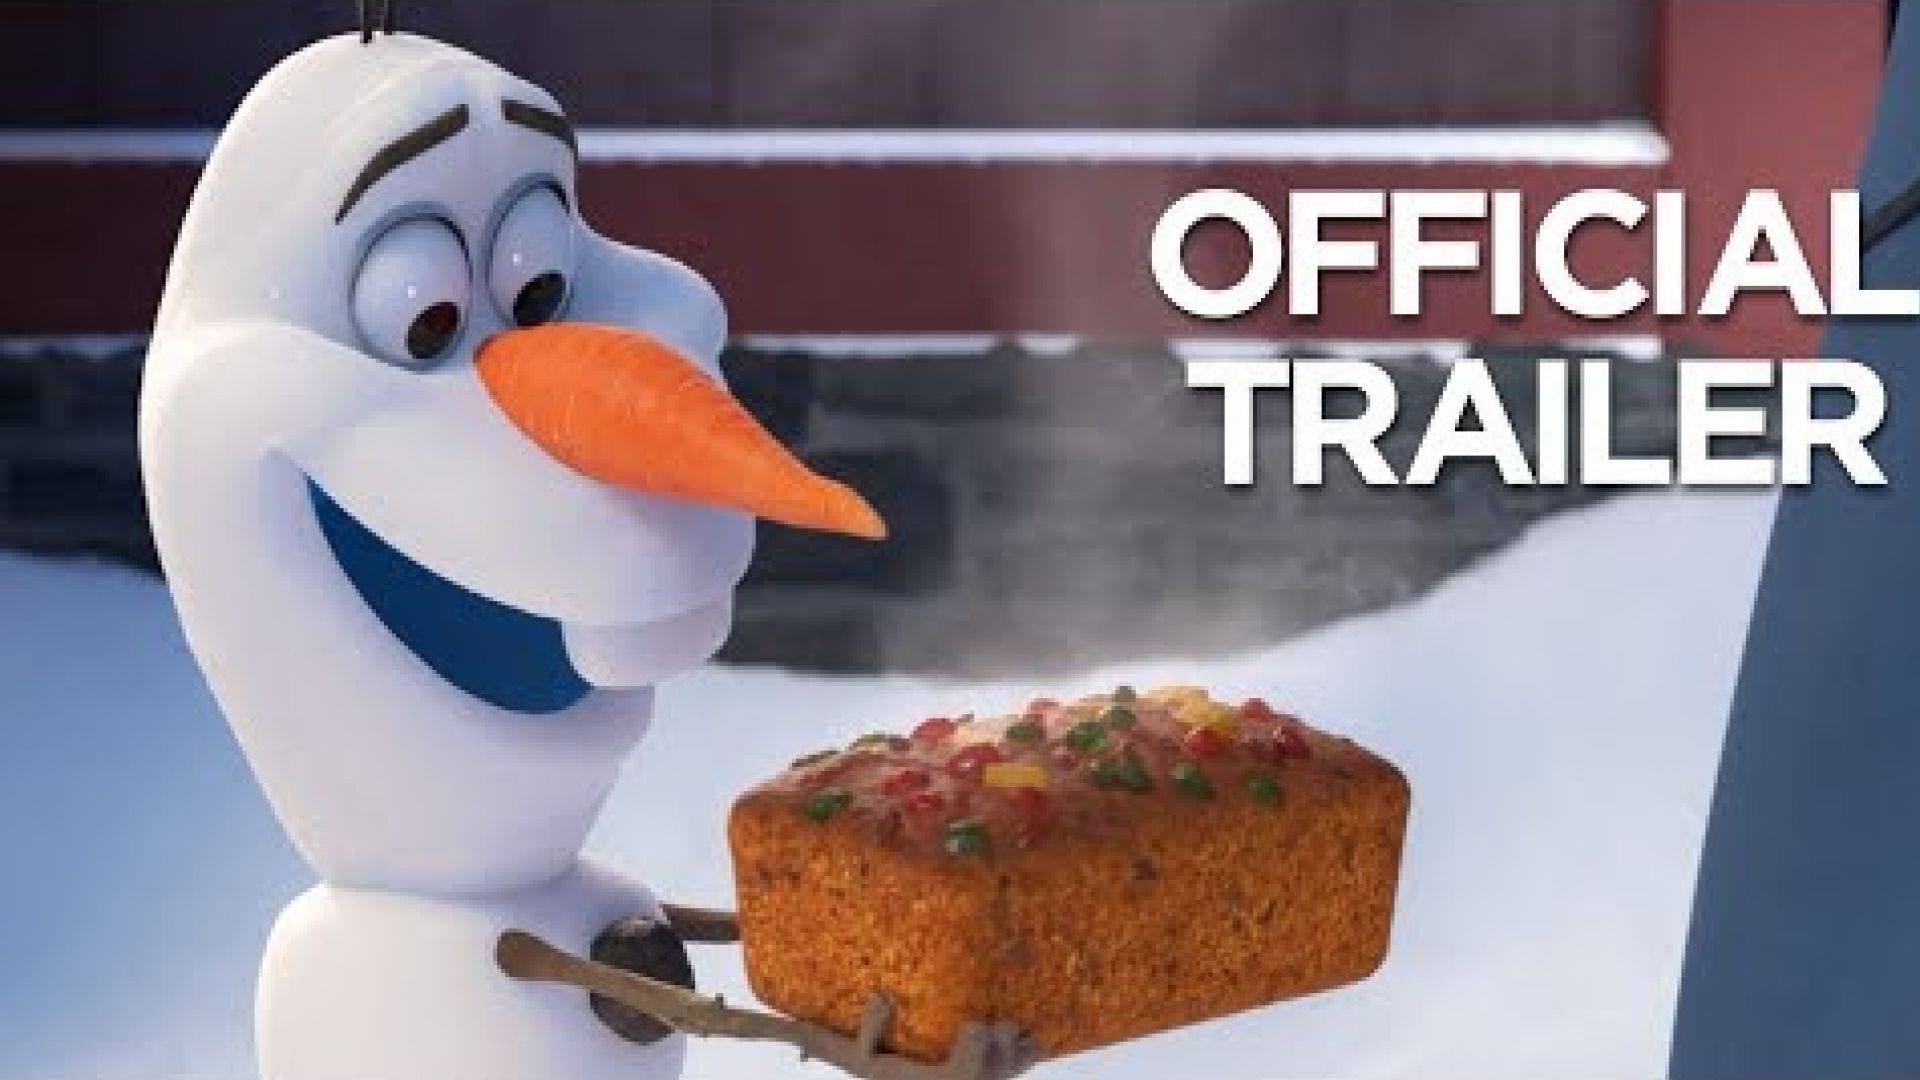 Olaf's Frozen Adventure will play in front of Disney-Pixar's